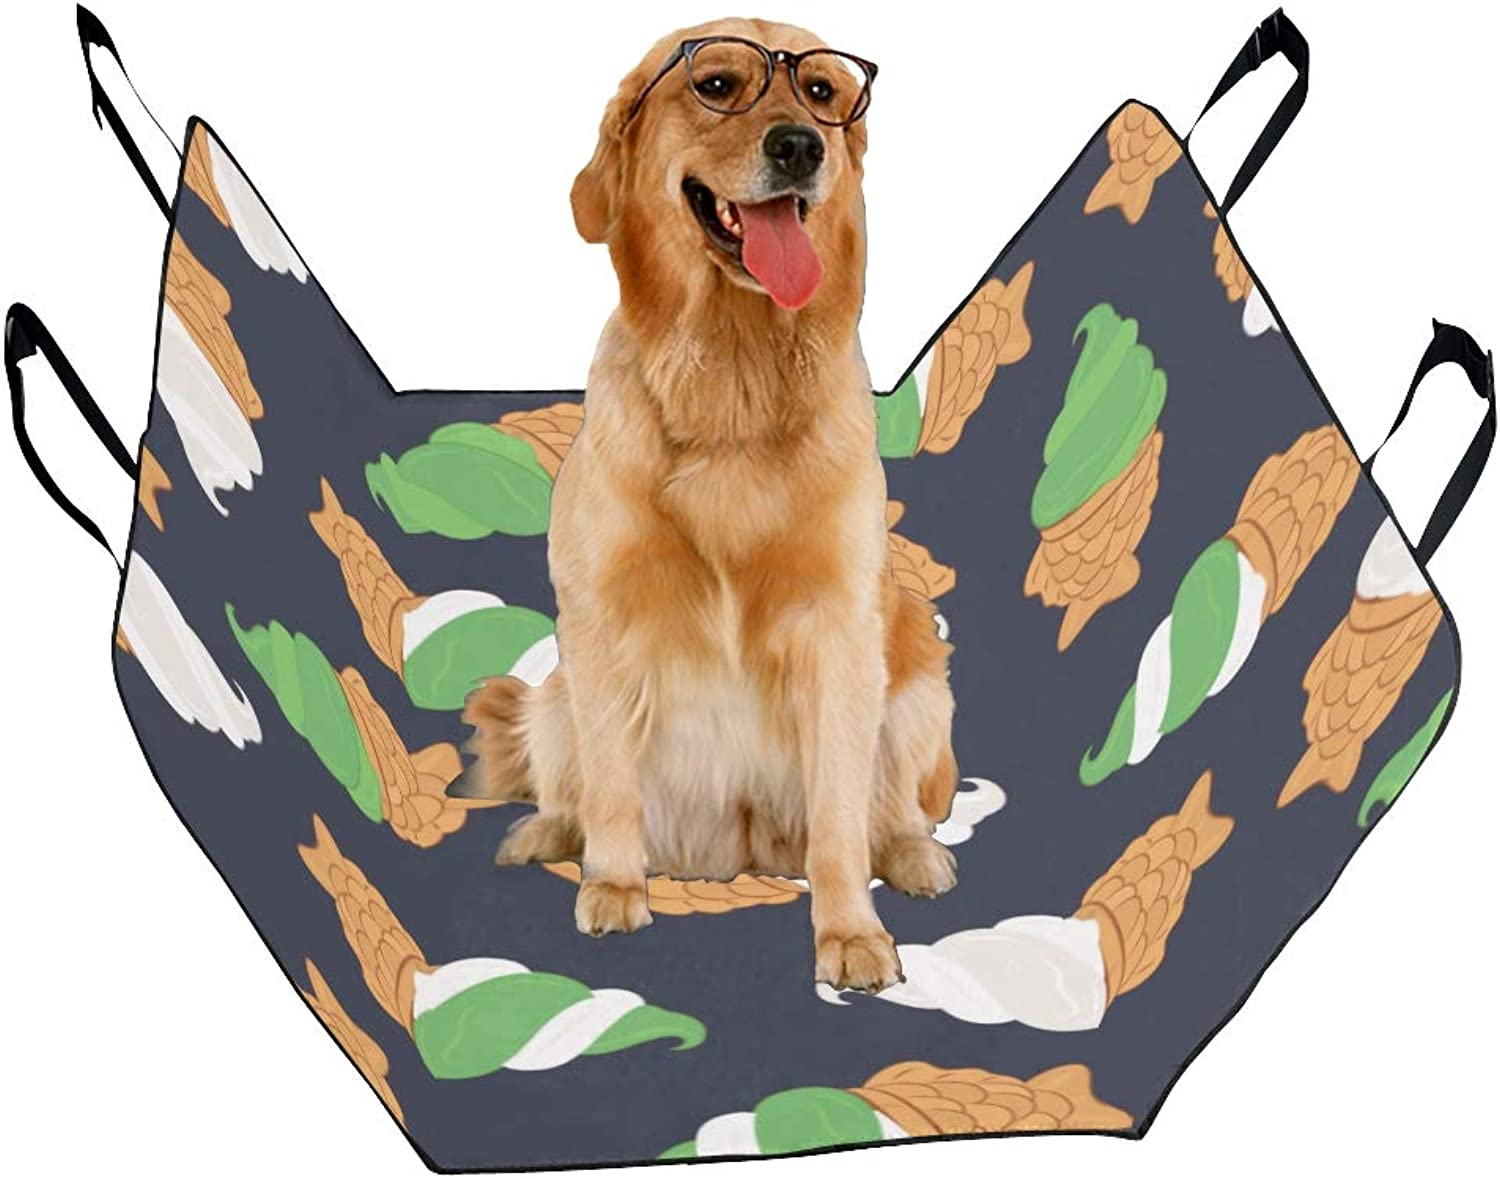 Fashion Oxford Pet Car Seat Matcha HandPainted Pastry Drinks Waterproof Nonslip Canine Pet Dog Bed Hammock Congreenible for Cars Trucks SUV